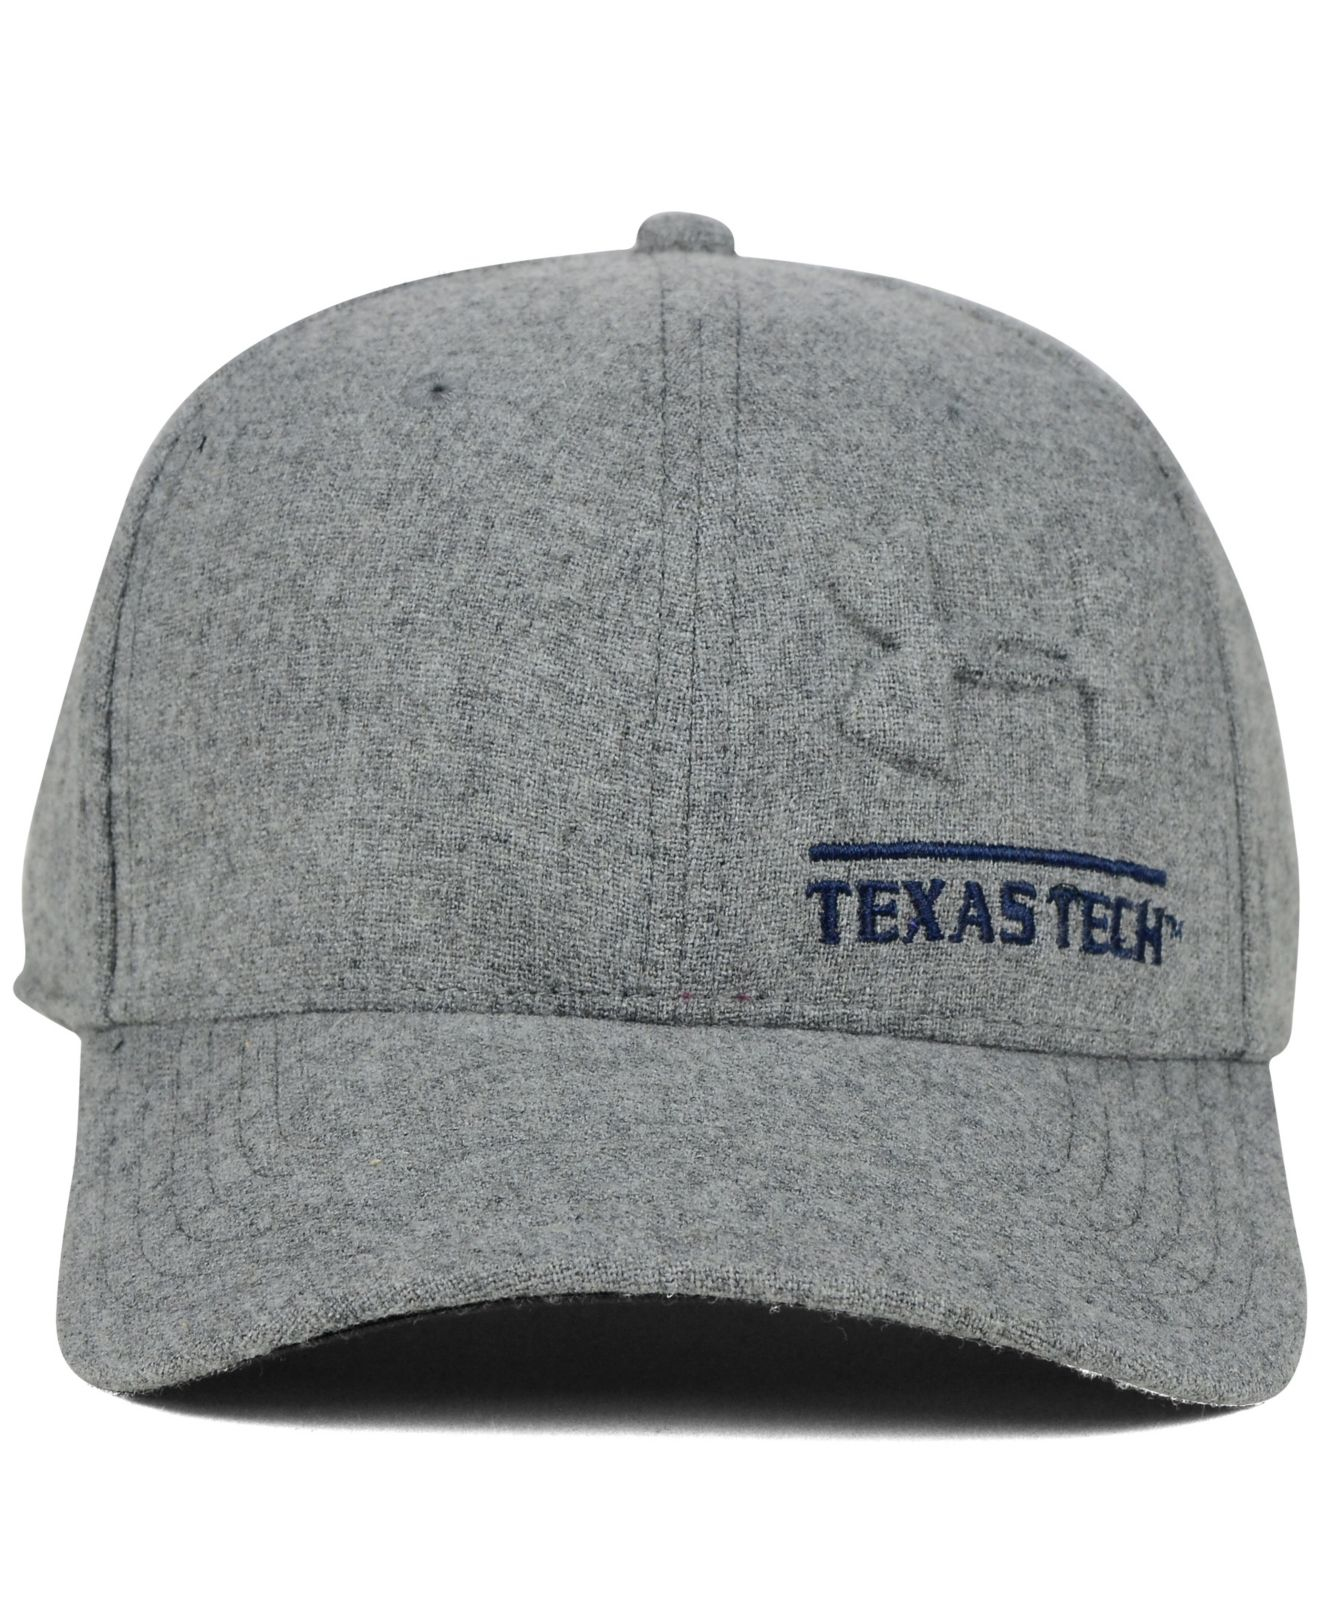 13919955953 Lyst - Under Armour Texas Tech Red Raiders Grayout Stretch Cap in ...